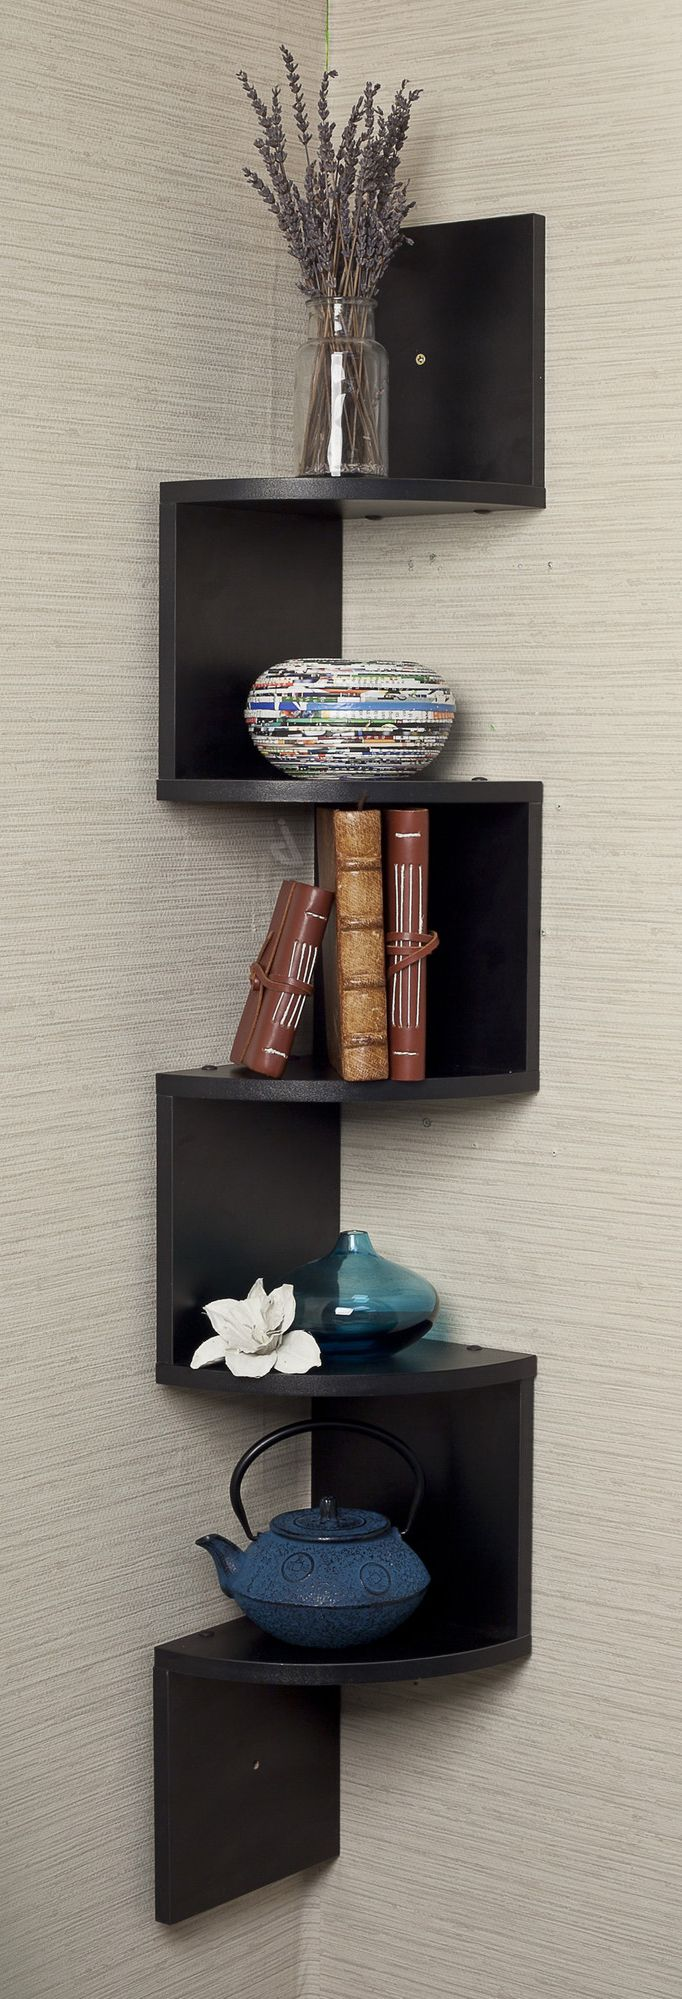 best 25+ unique shelves ideas only on pinterest | open shelving